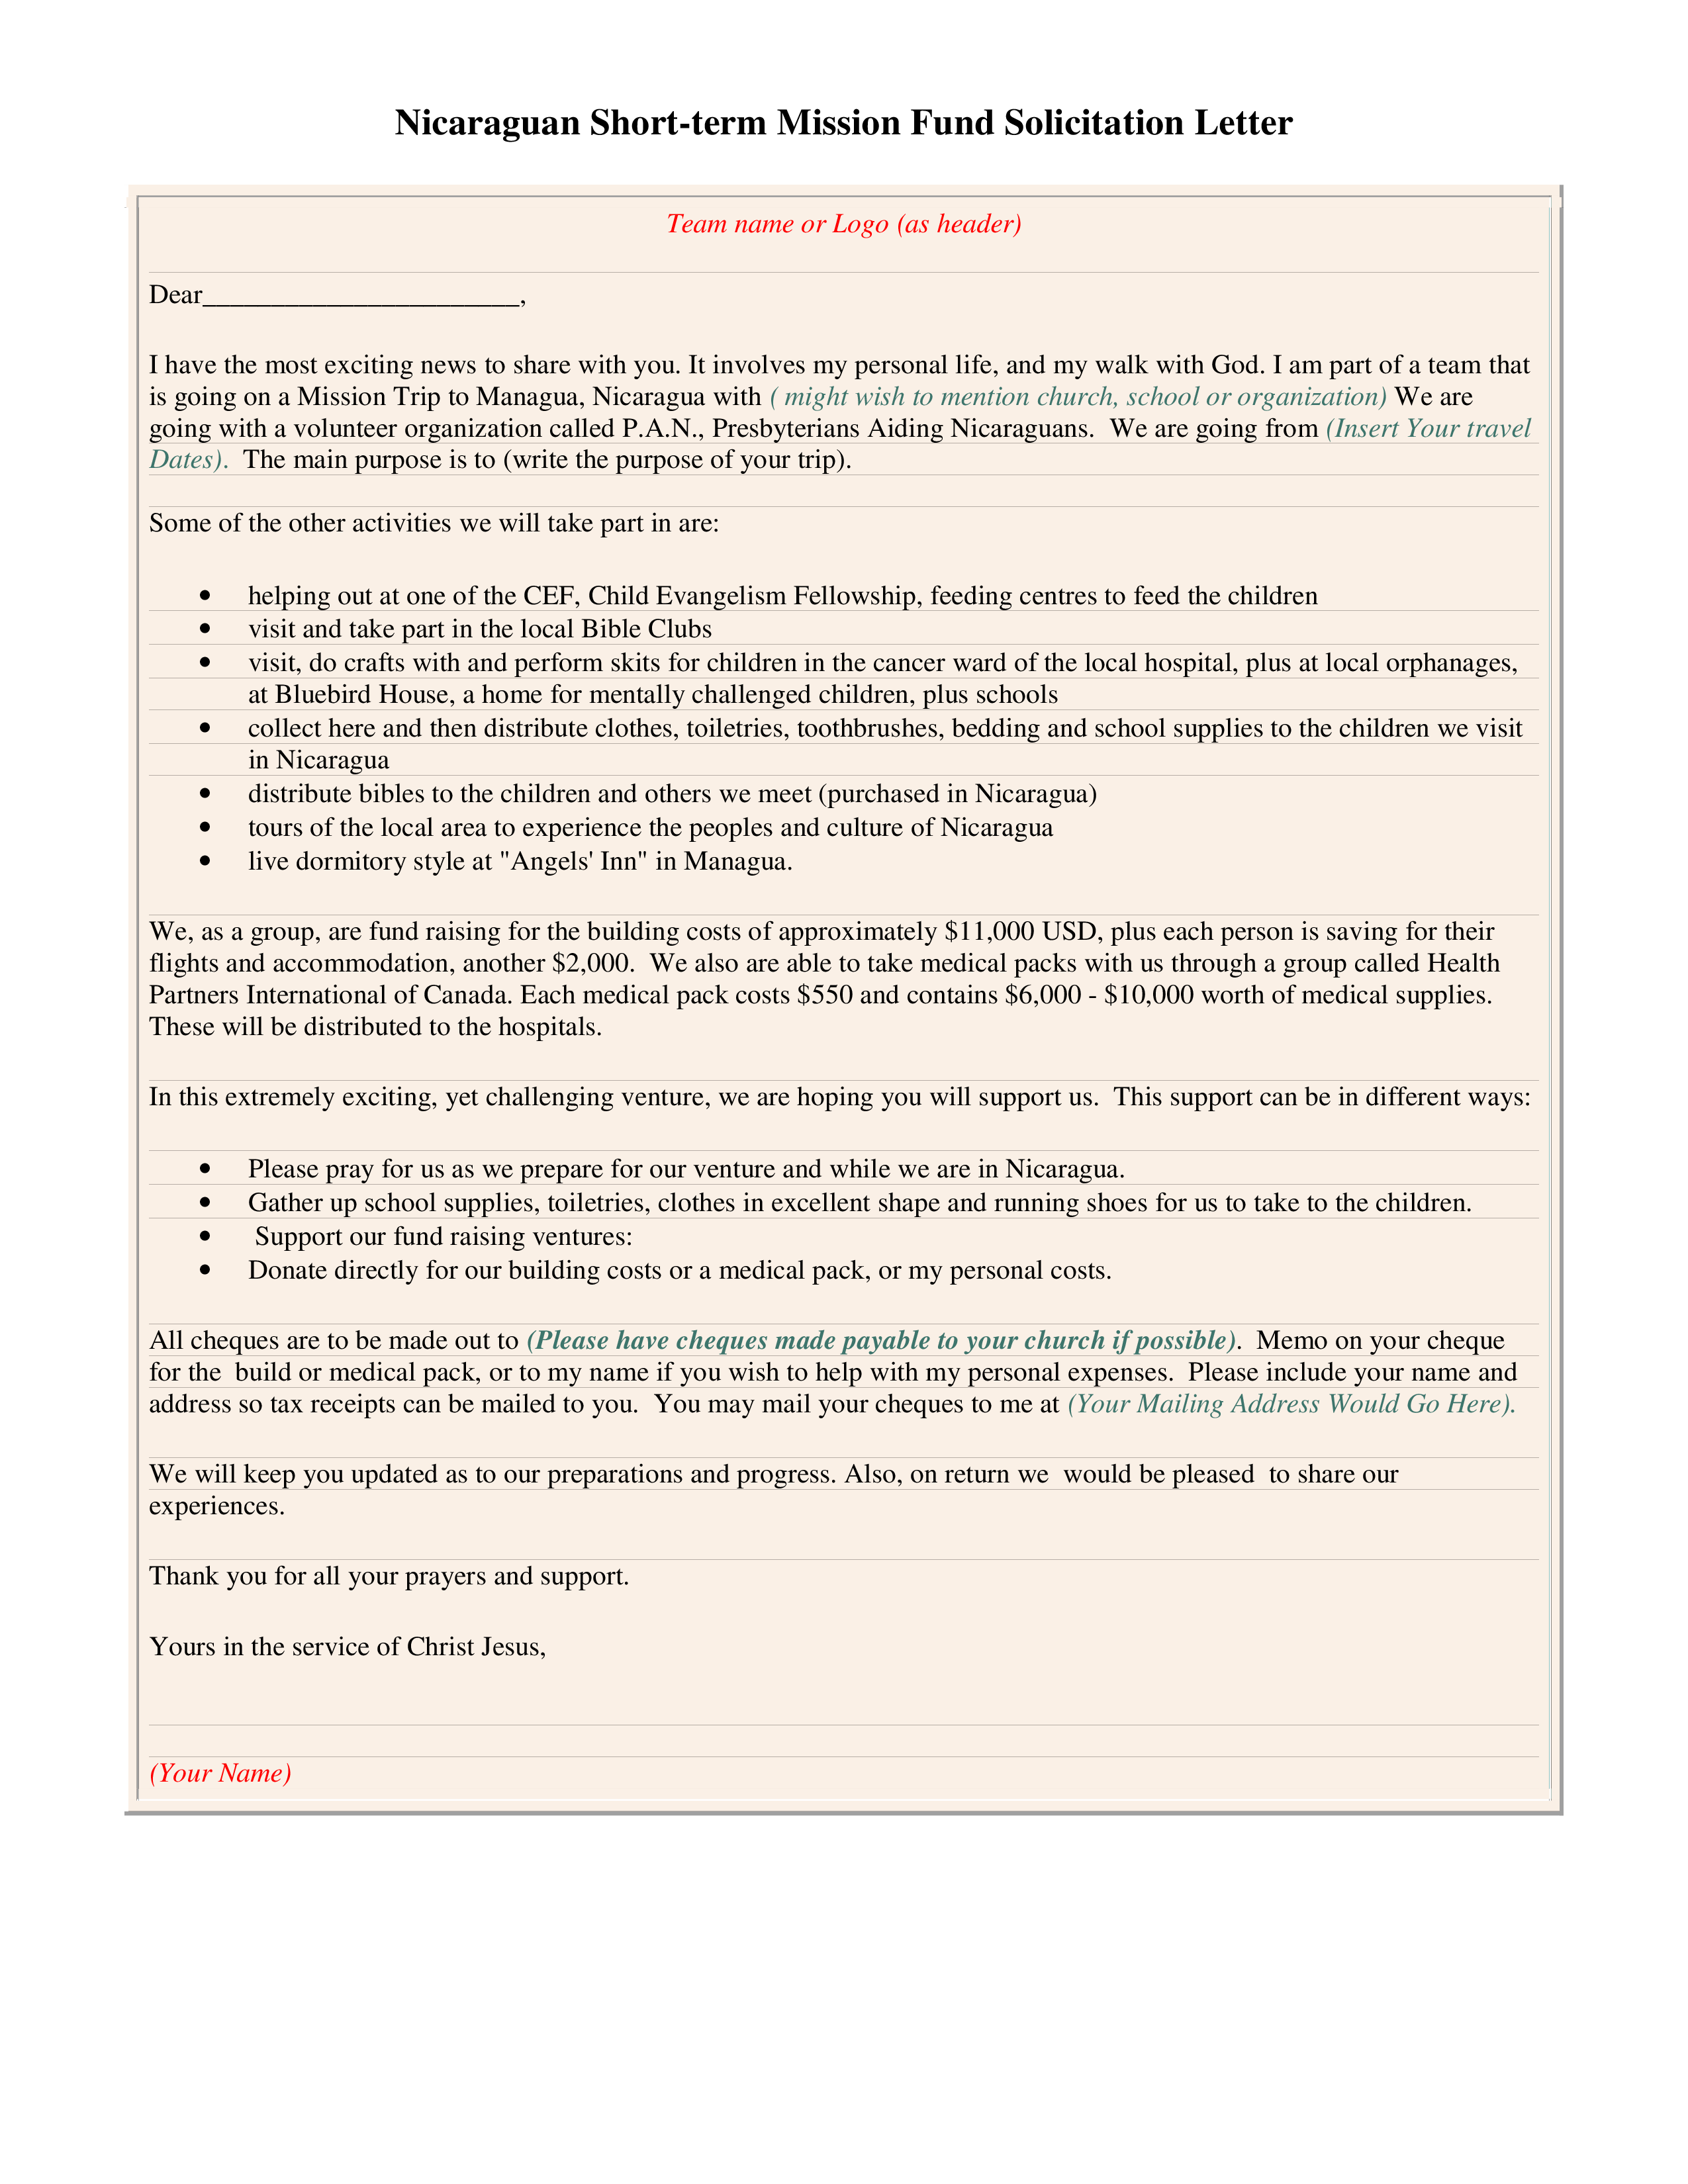 Free fund solicitation letter templates at allbusinesstemplates fund solicitation letter main image thecheapjerseys Choice Image